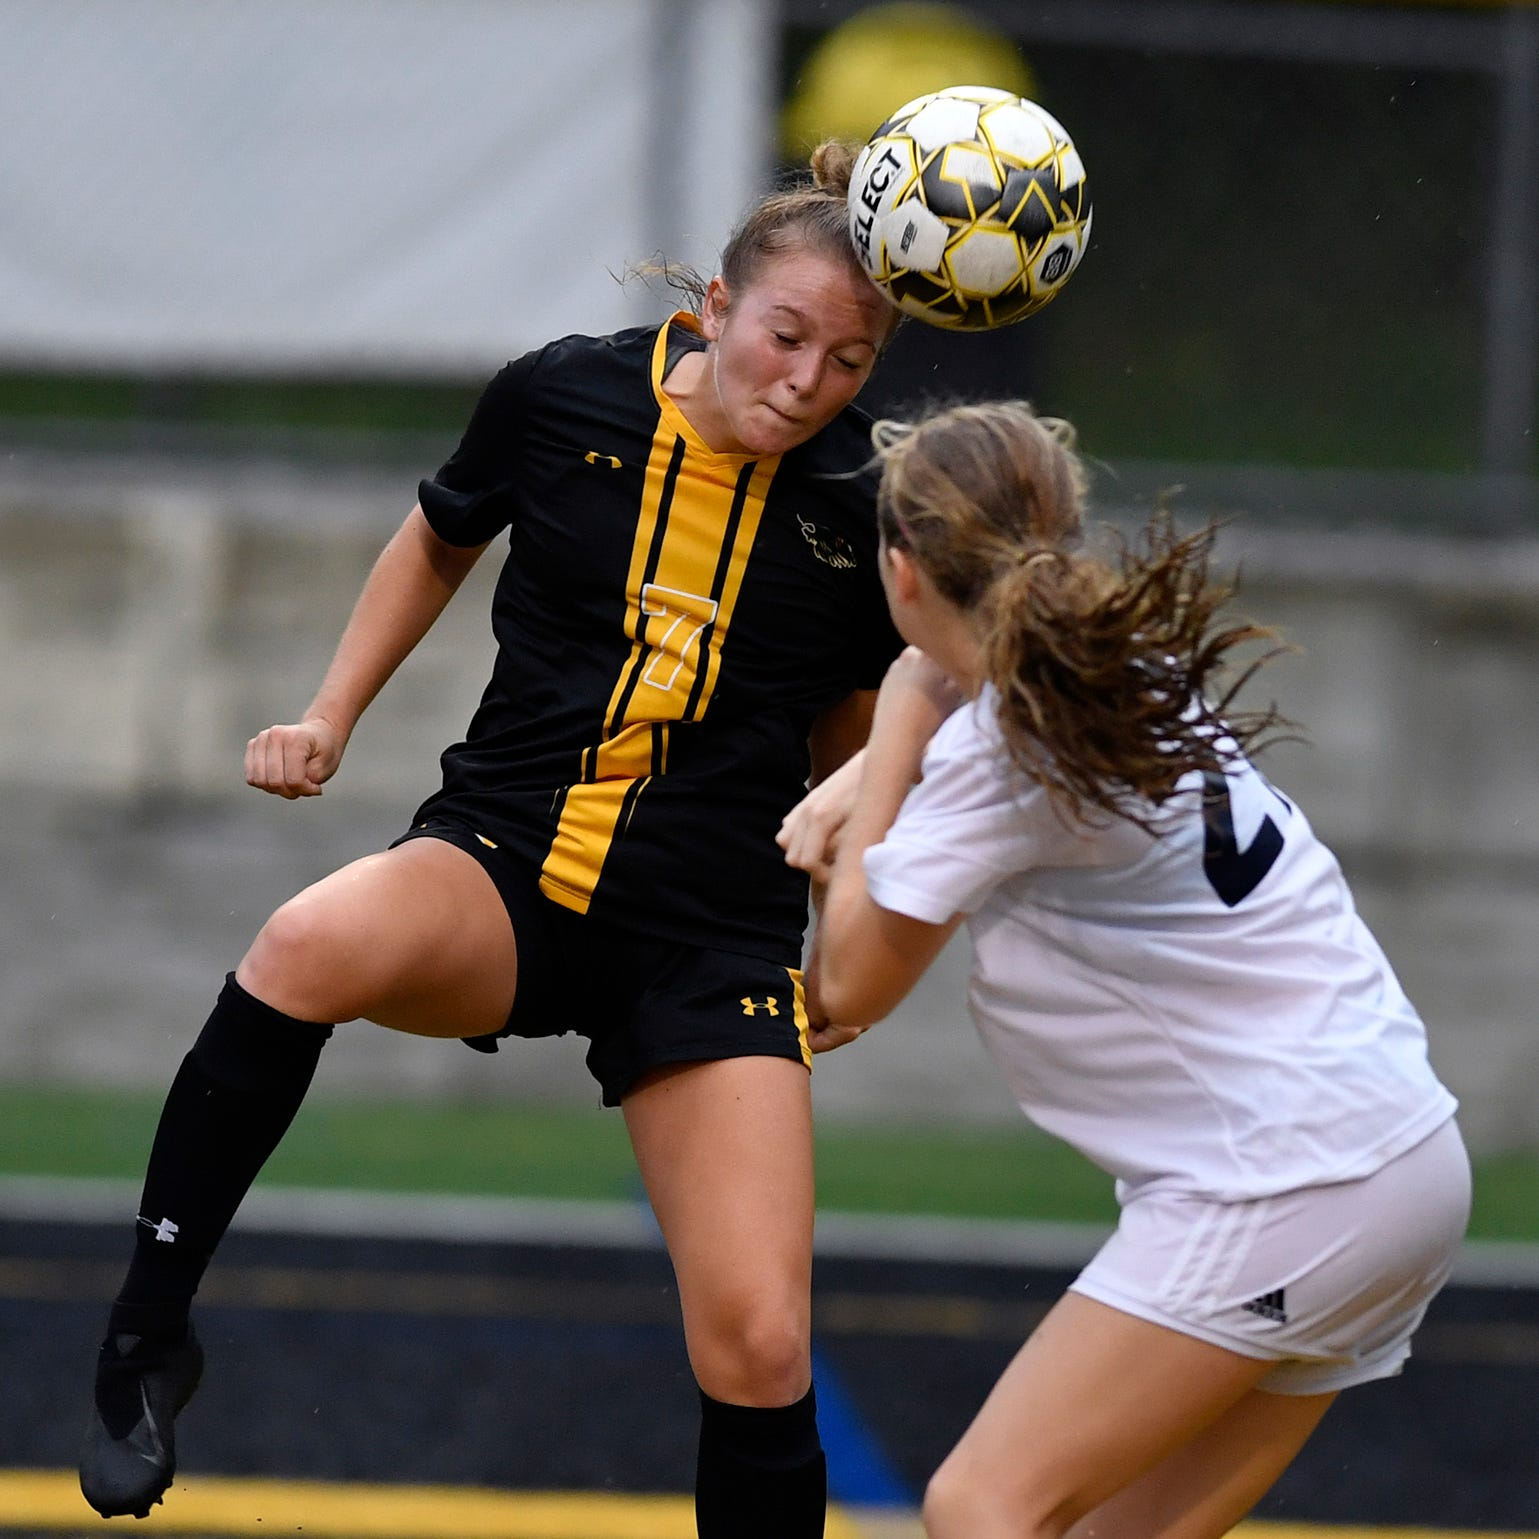 Girls' soccer roundup, Thursday, Oct. 11: Red Lion wins first Division I title since 2006